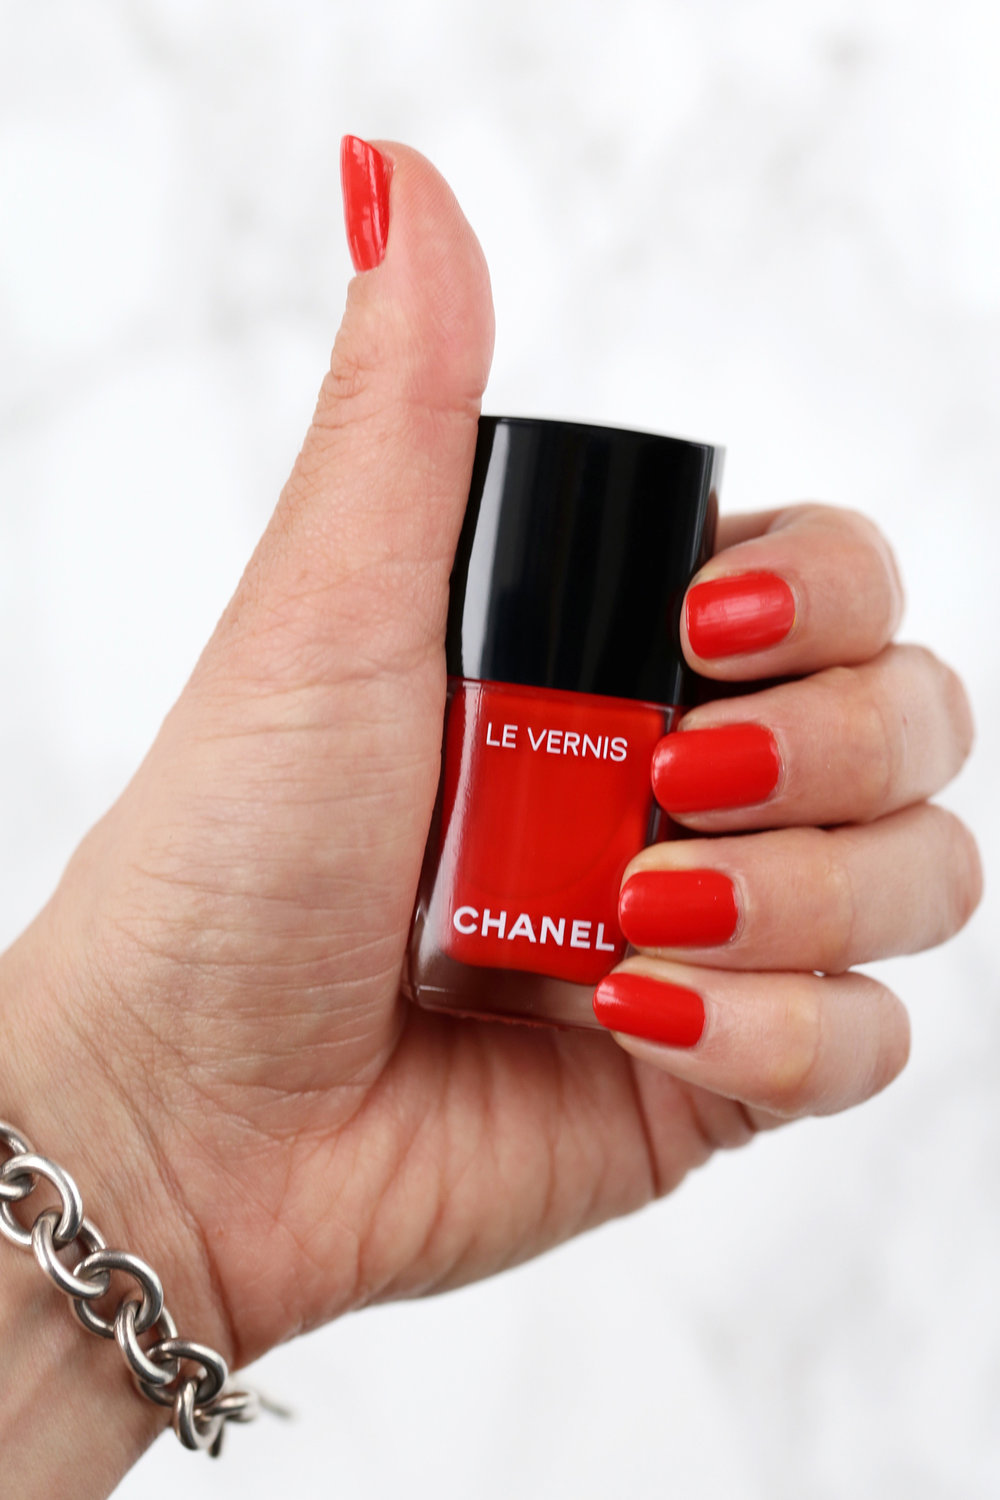 CHANEL LE VERNIS LONGWEAR NAIL POLISH in 634 ARANCIO VIBRANTE - makeup review SS18 collection NEAPOLIS, NEW CITY - lipsick.me - nathalie martin lipstick beauty blog_6364.jpg